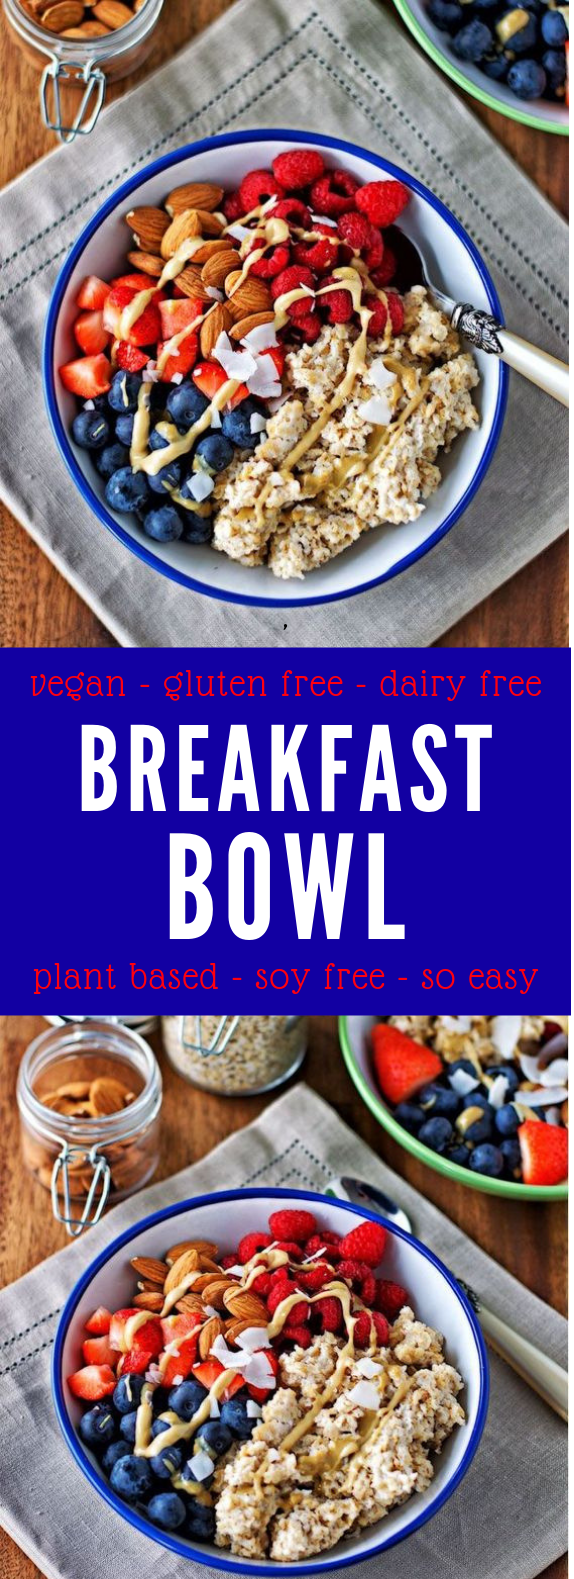 BREAKFAST BOWL [VEGAN, GLUTEN FREE] #Vegan #Breakfast